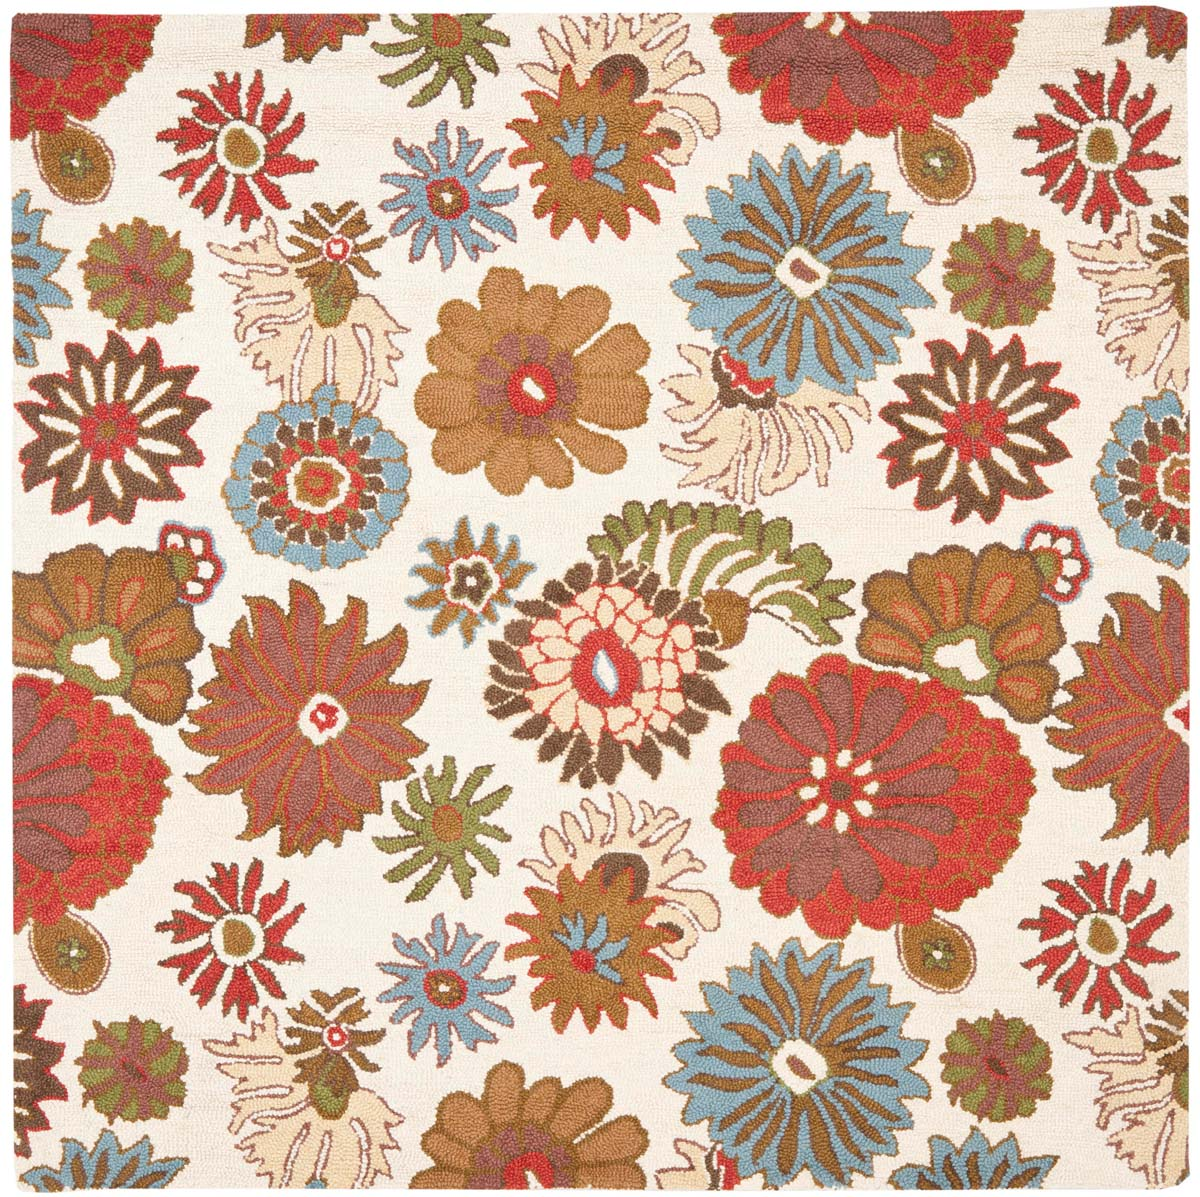 Rug Blm731a Blossom Area Rugs By Safavieh